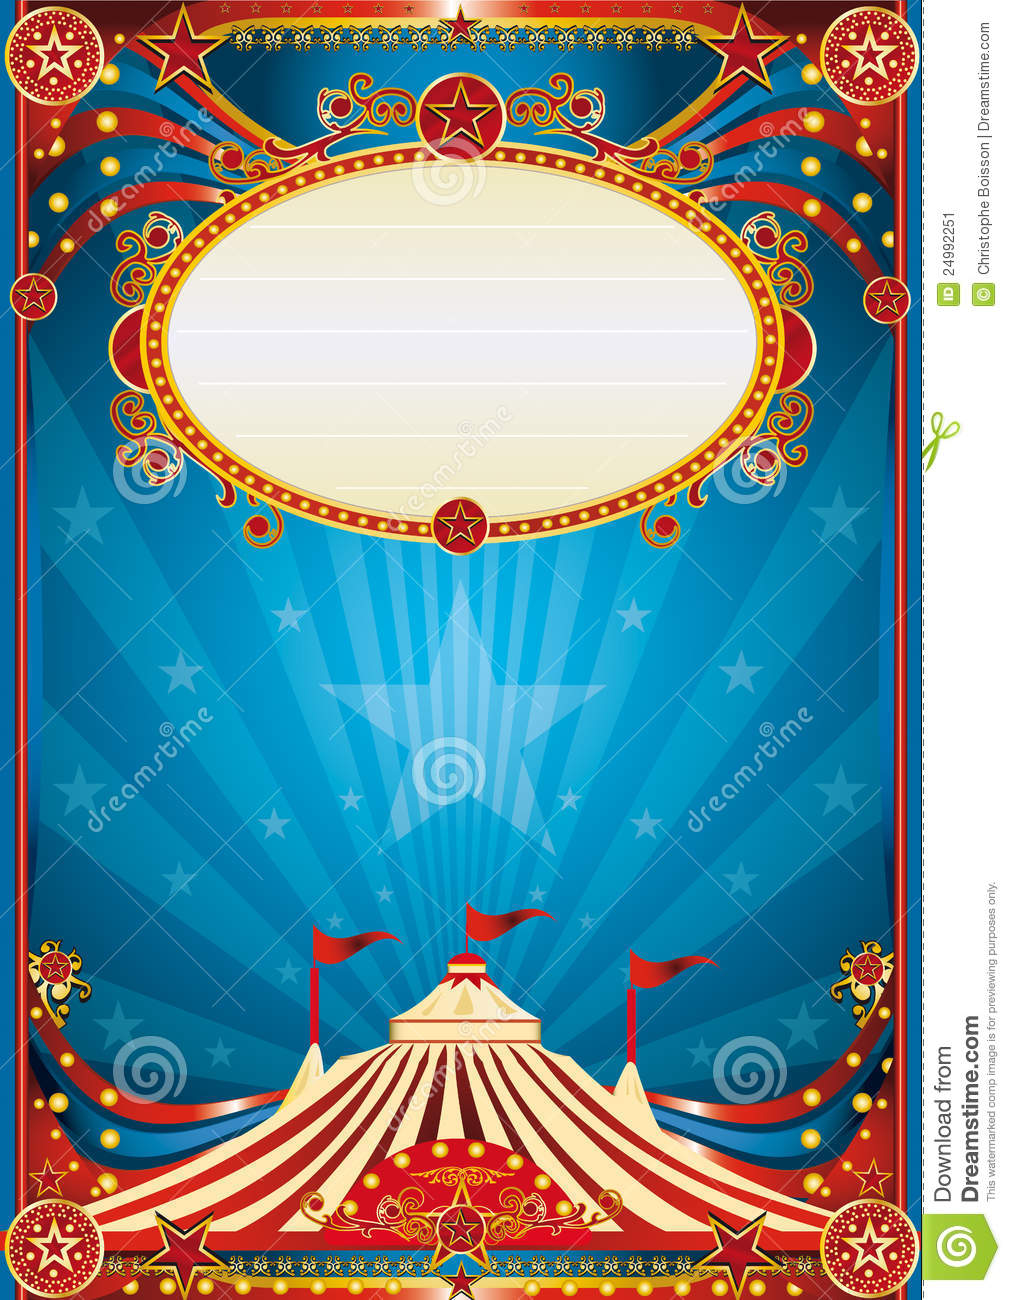 Circus Tent Stock Vector Auto Electrical Wiring Diagram Fenwal Ignition Module 35 655921 001 Blue Background Illustration Of Party